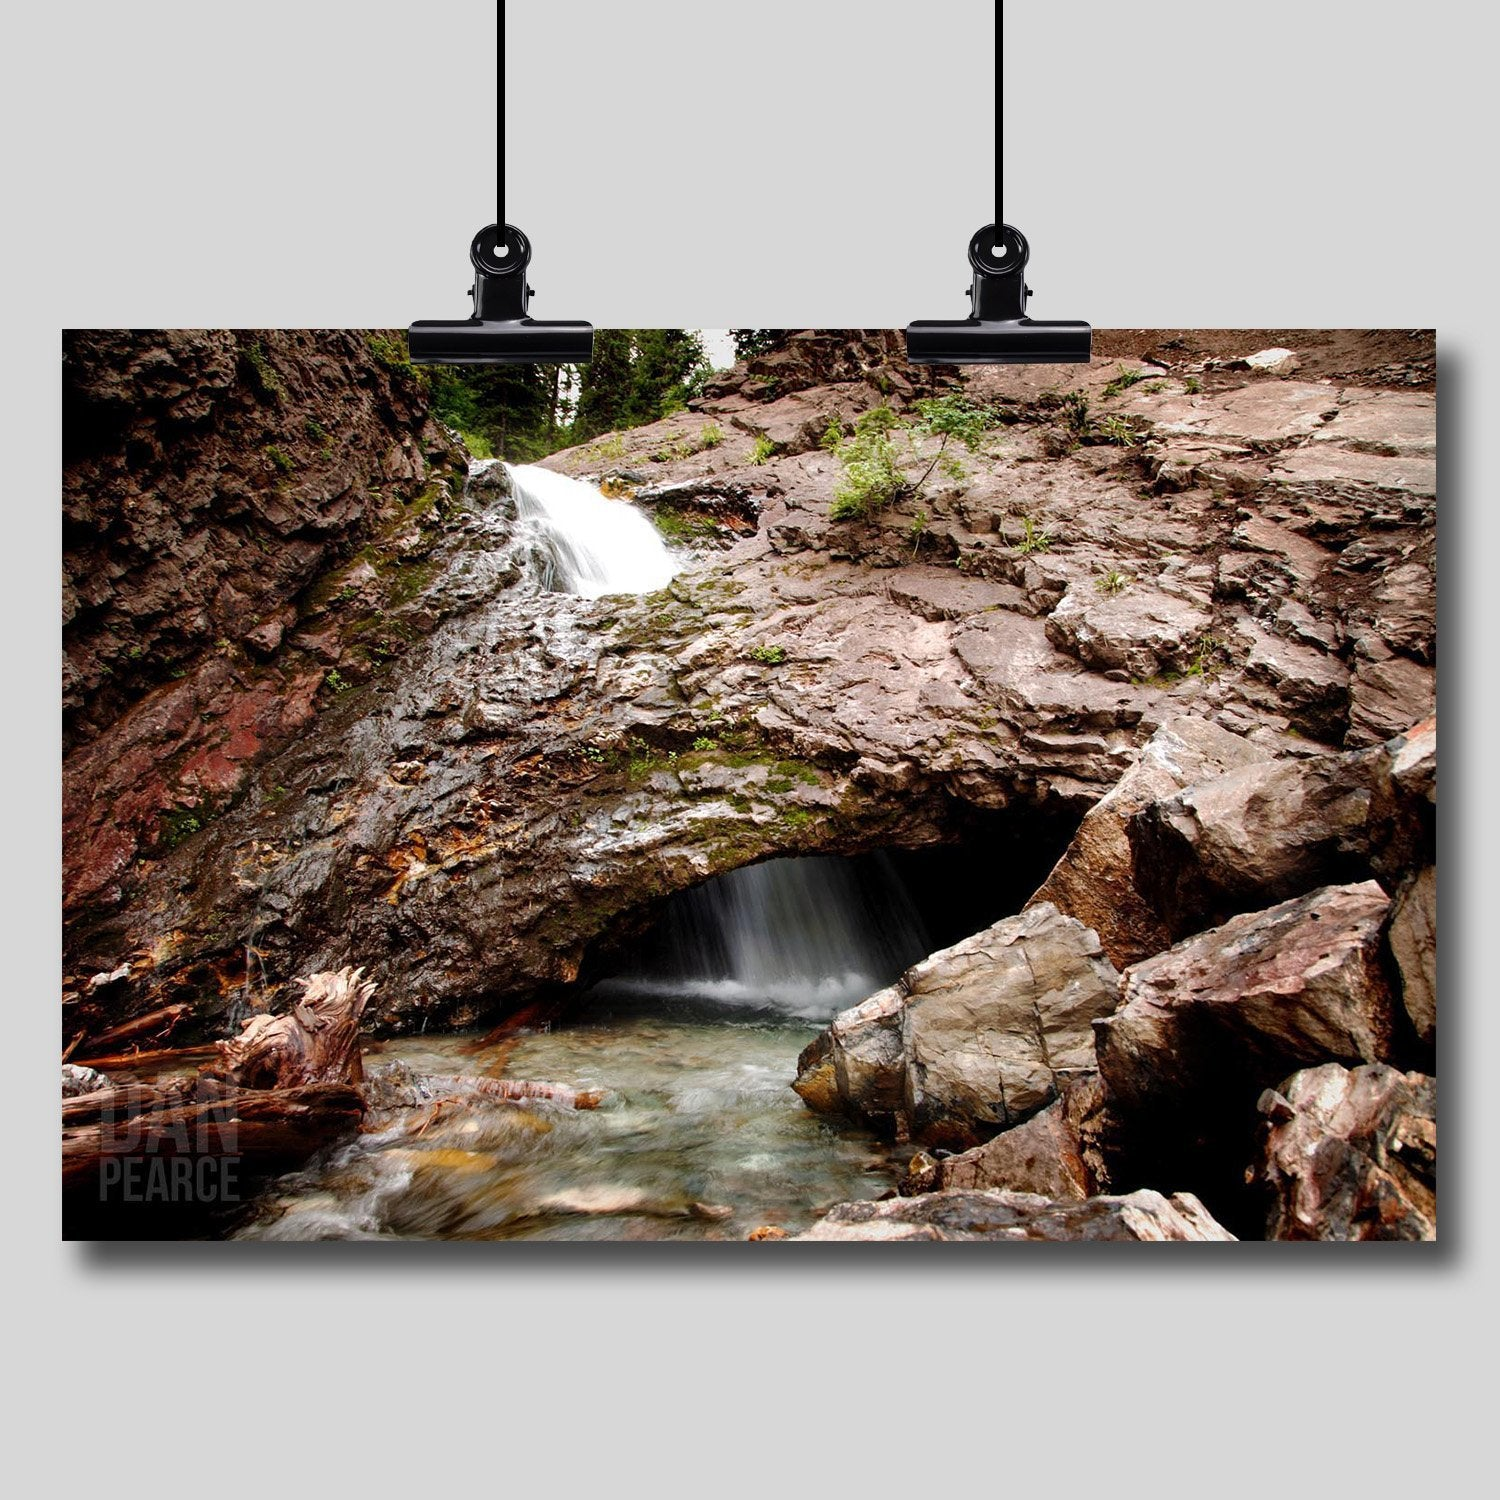 Photo Print: Donut Falls (Waterfall Into a Cave)